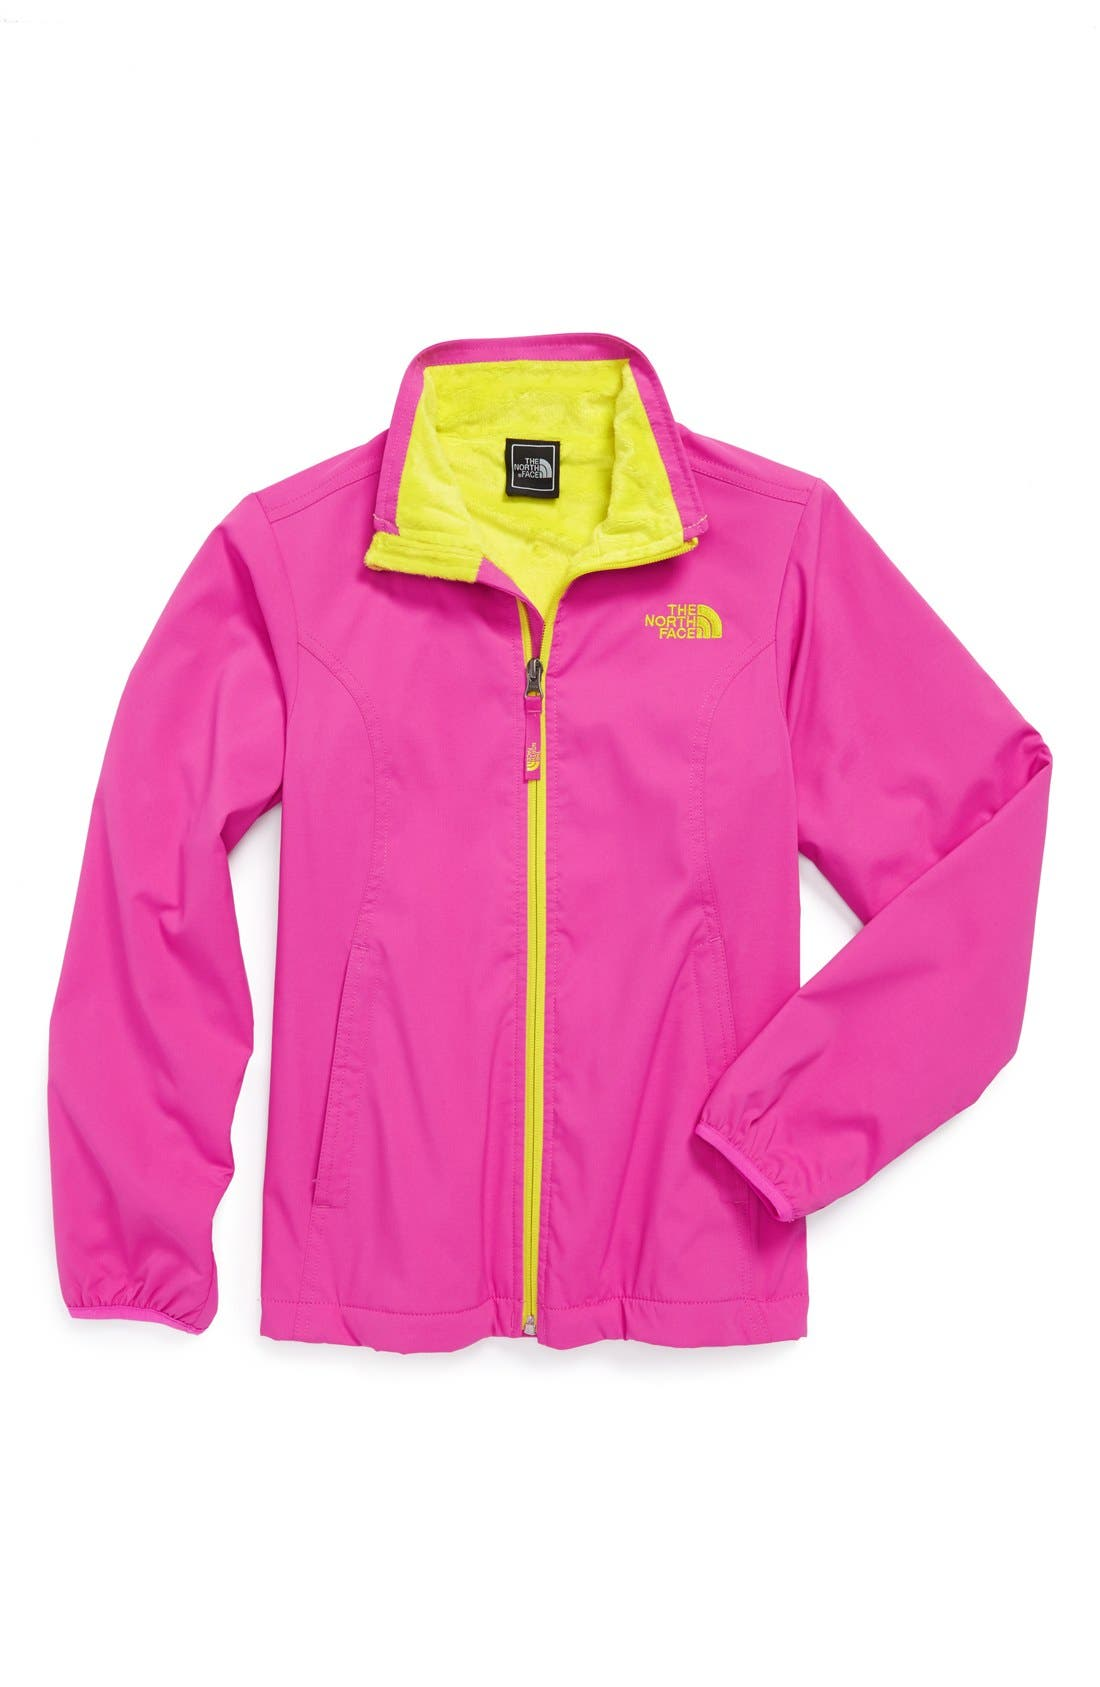 Main Image - The North Face 'Mossbud' Jacket (Big Girls)